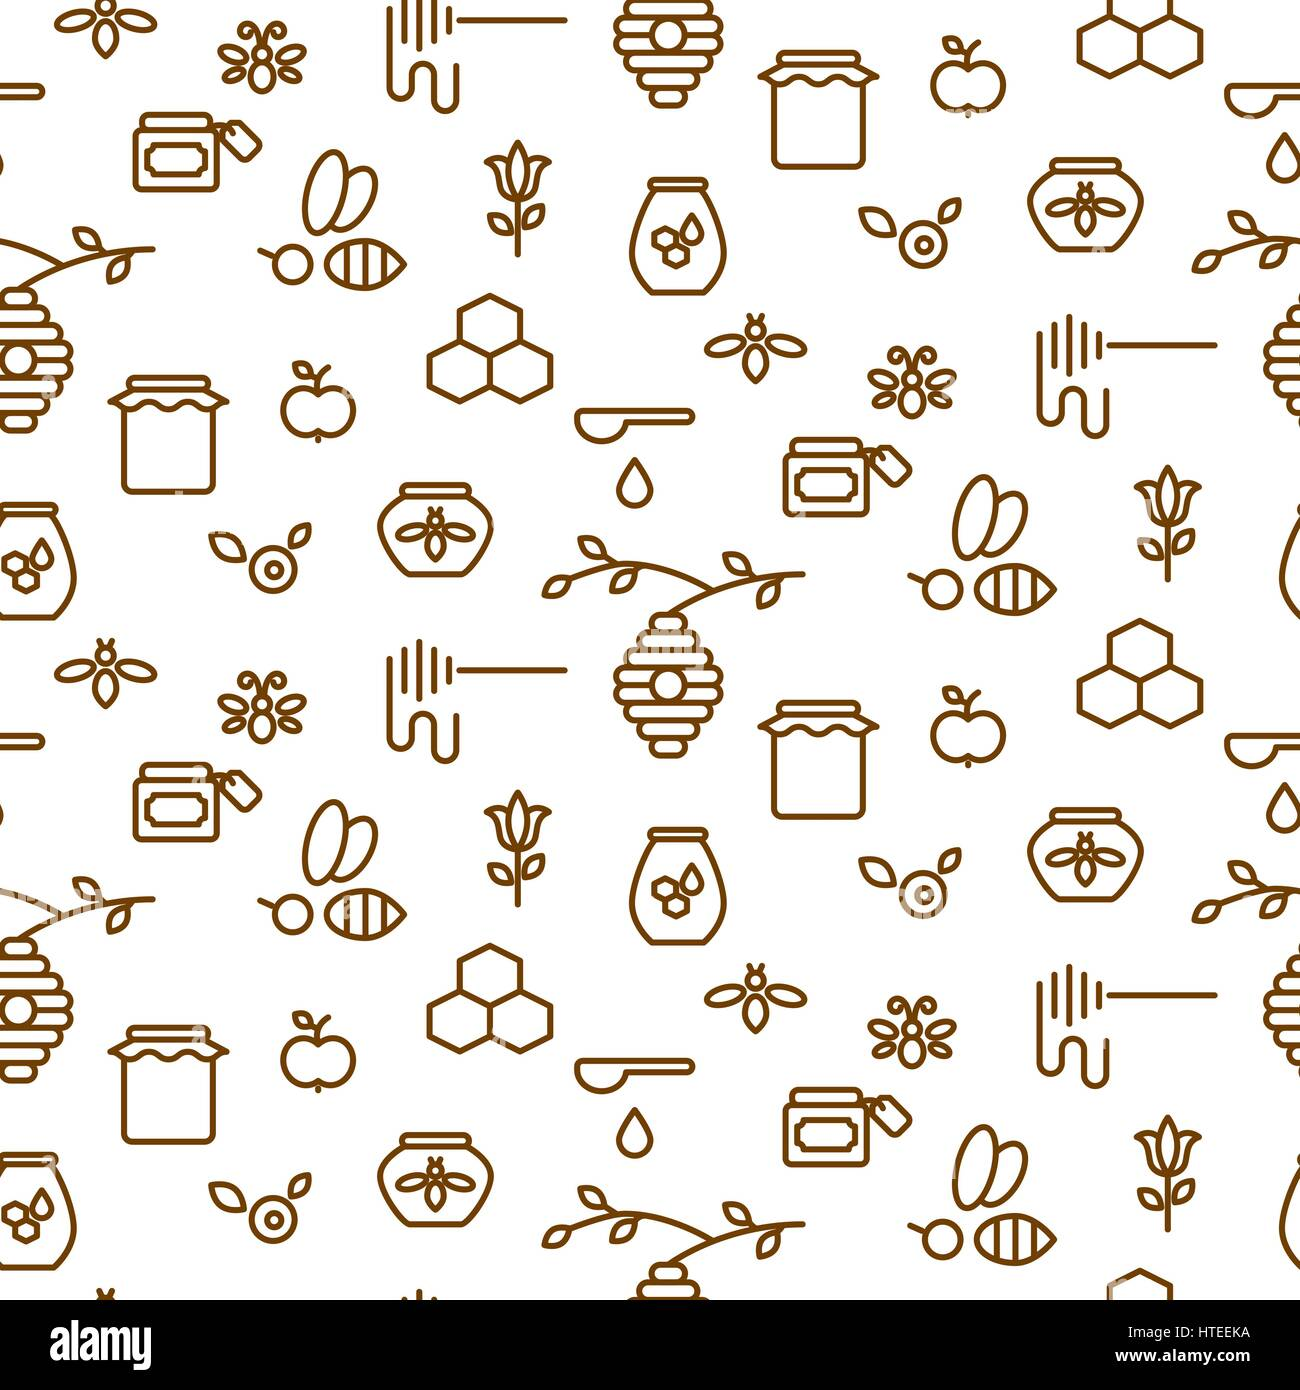 Beekeeping outline icon seamless vector pattern. - Stock Vector